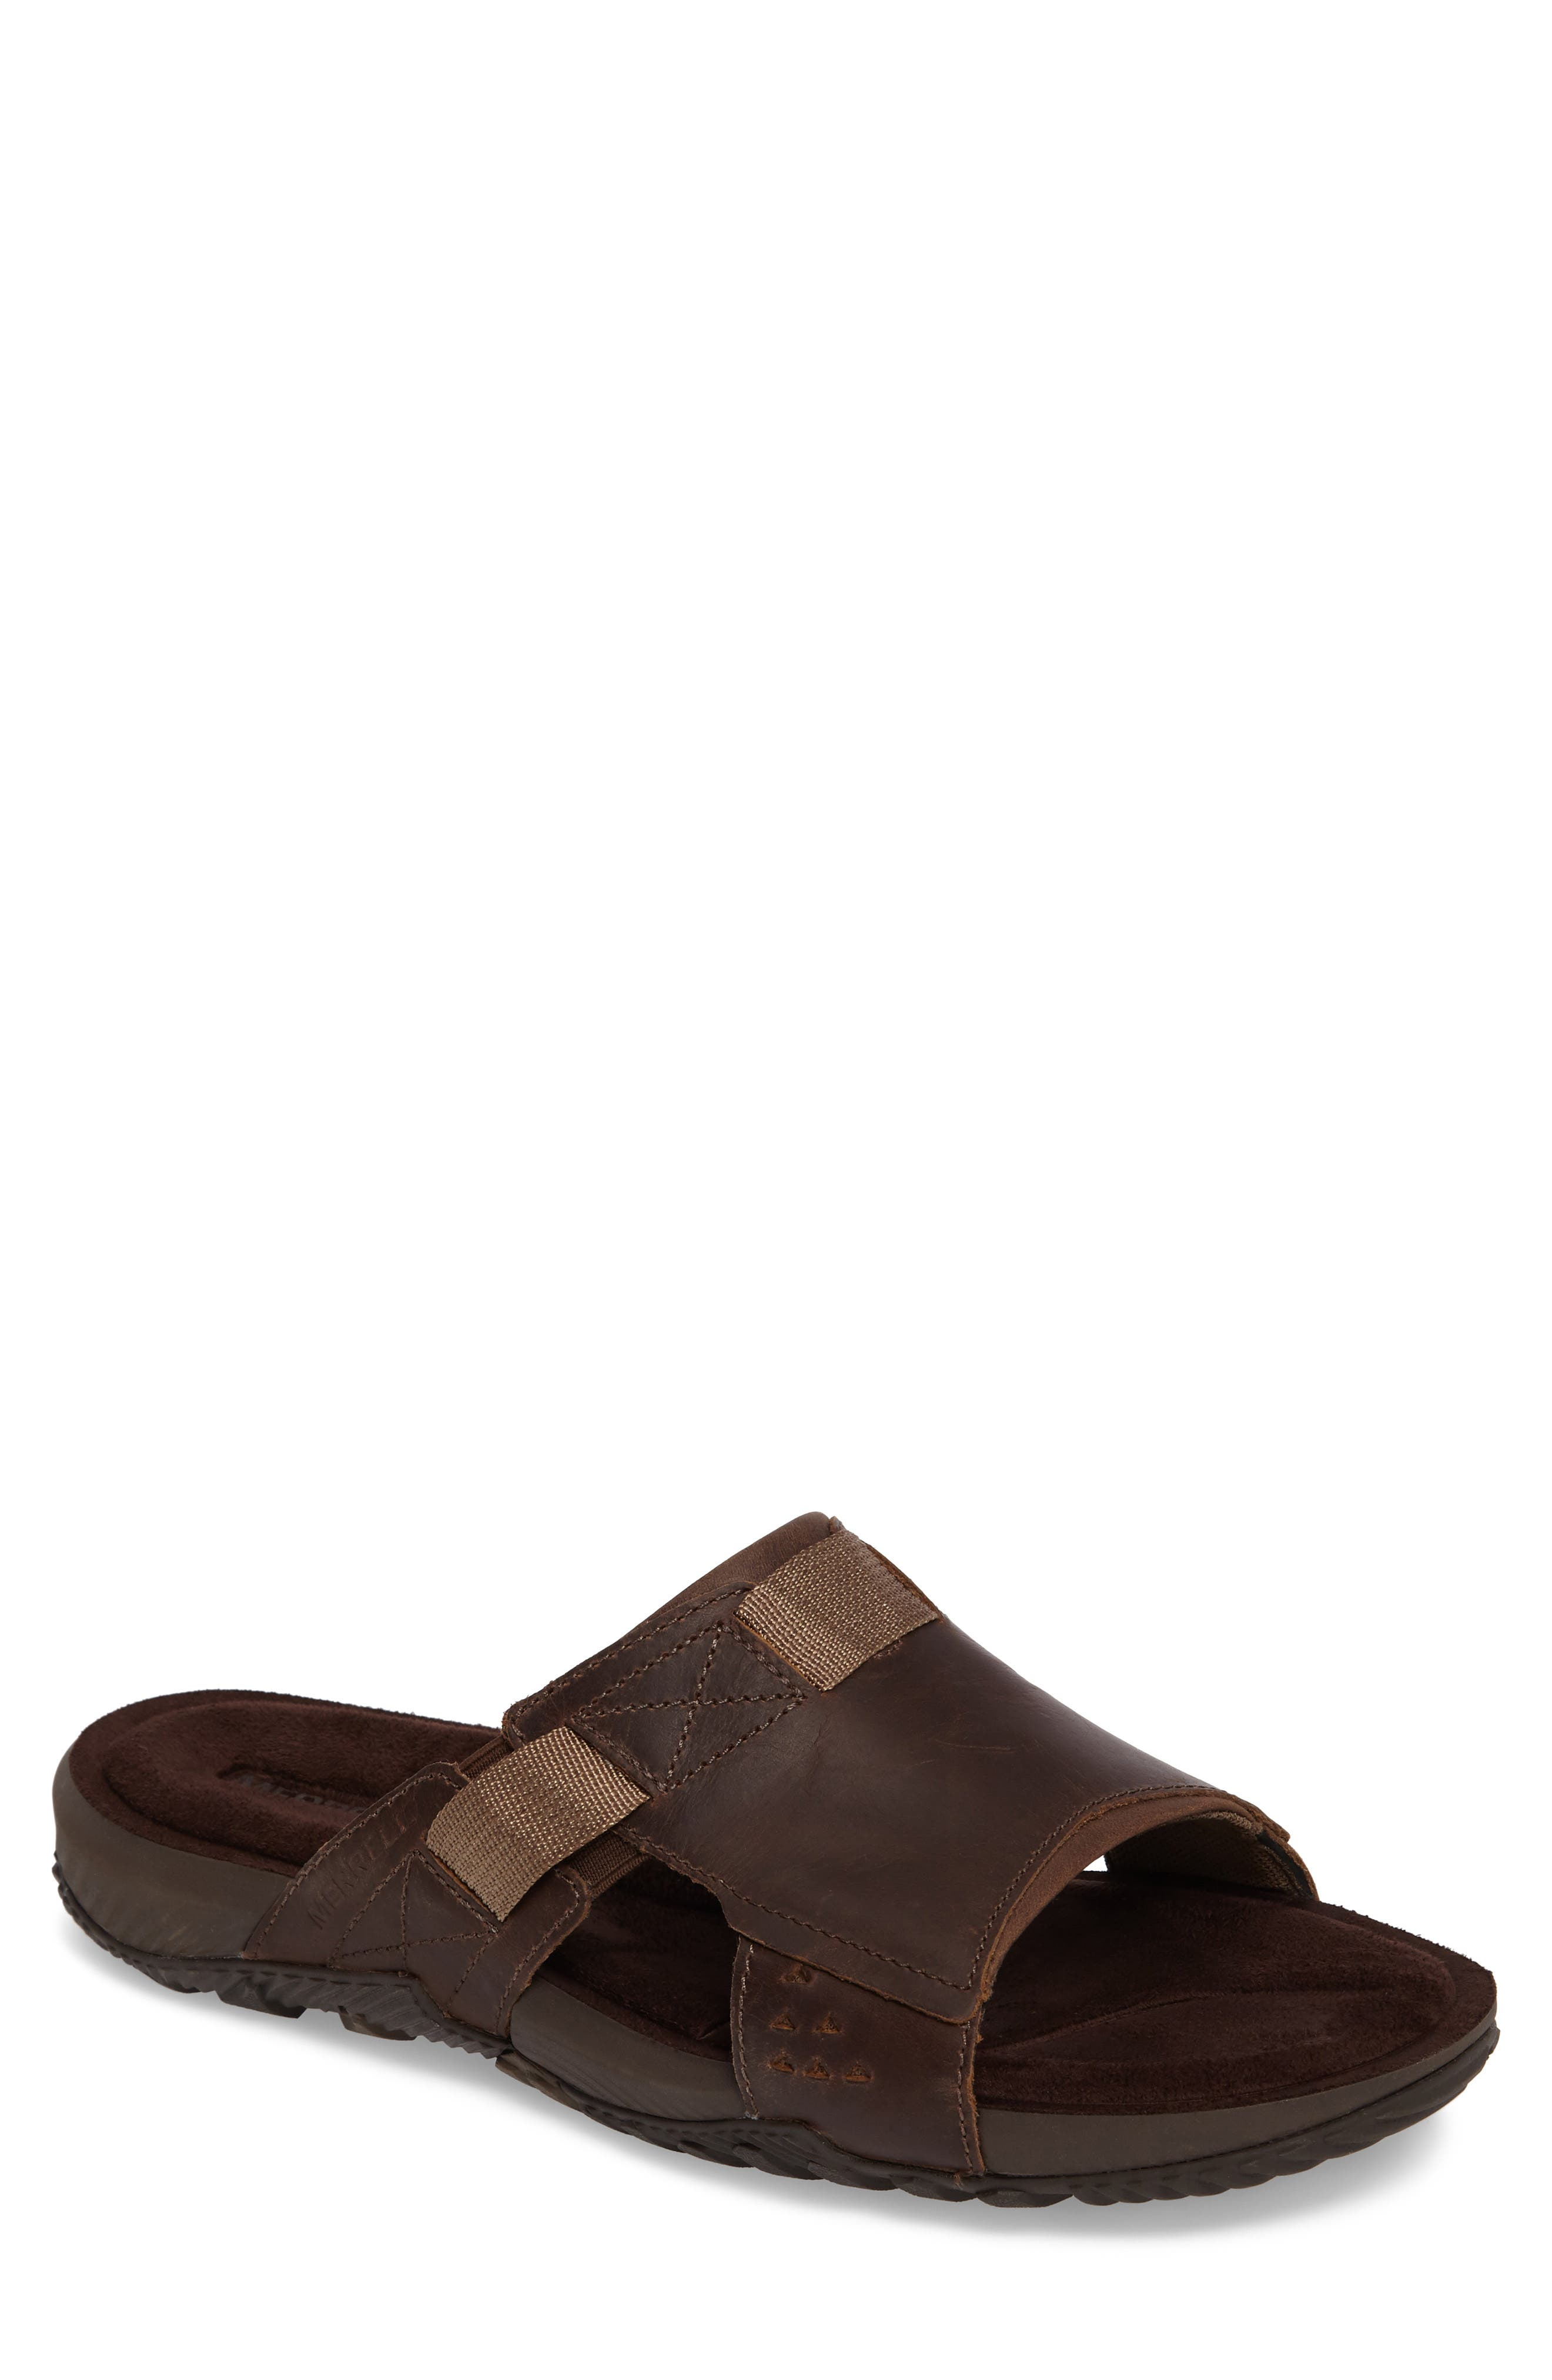 Terrant Slide Sandal,                         Main,                         color, Dark Earth